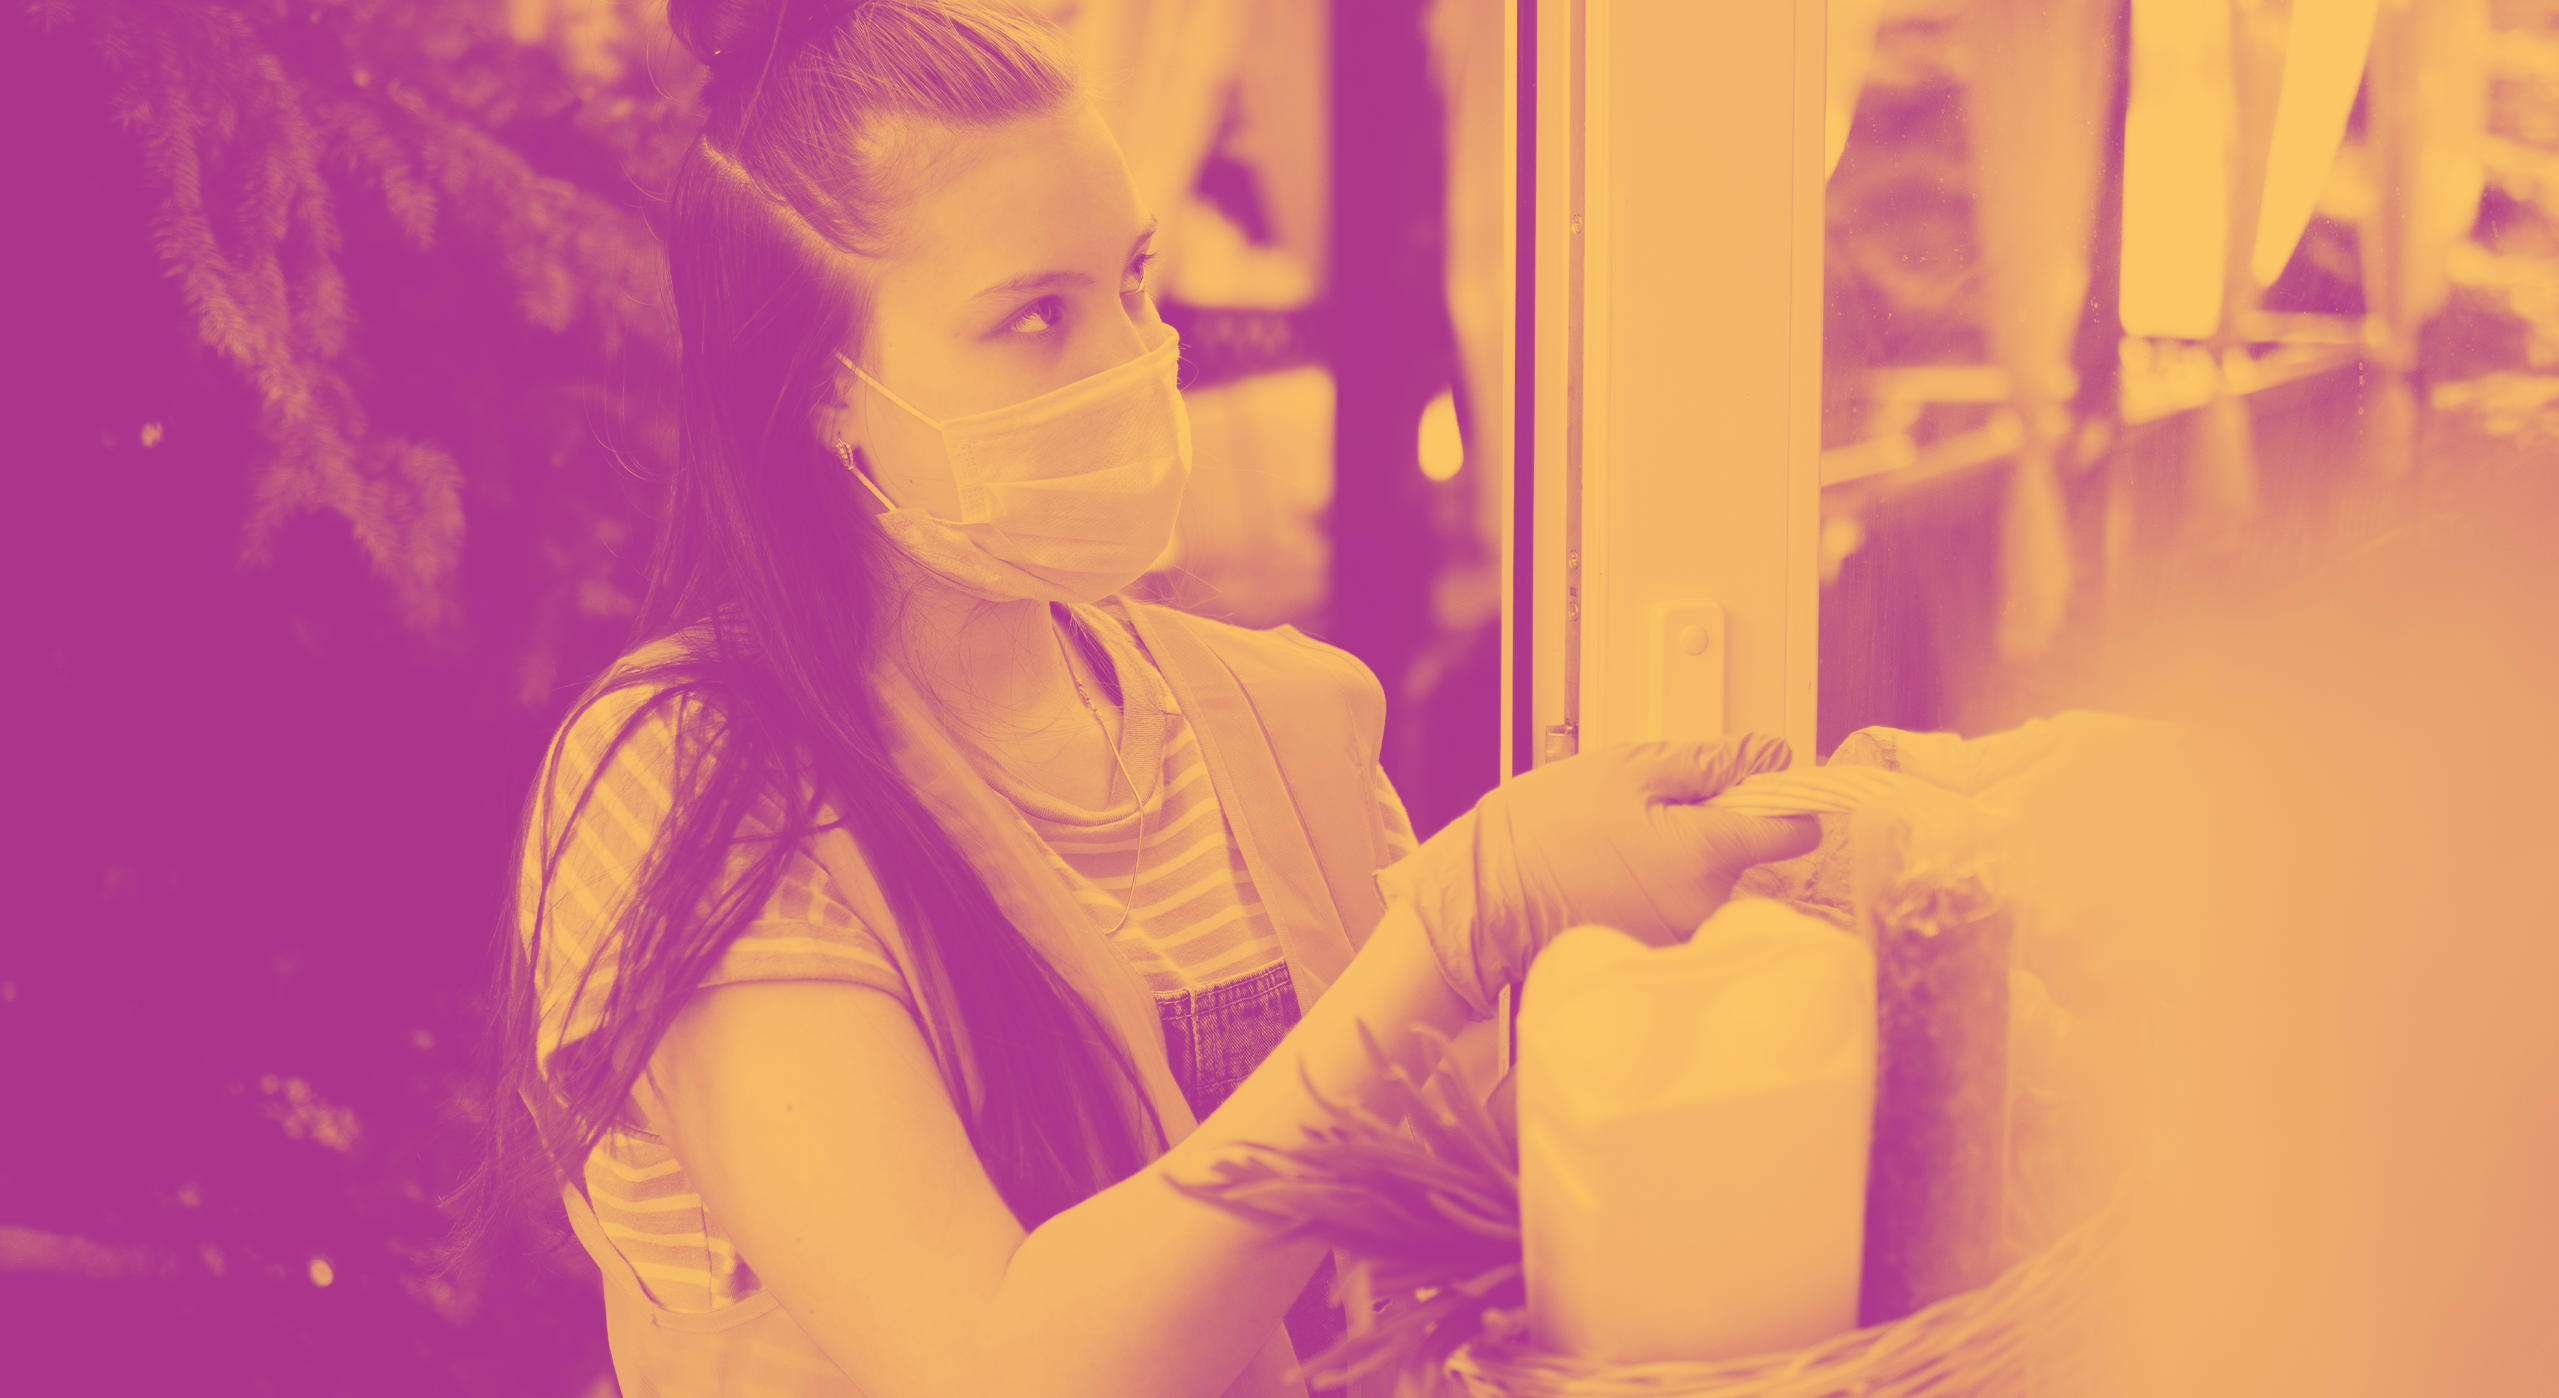 Girl in facemask volunteering a delivering food during pandemic